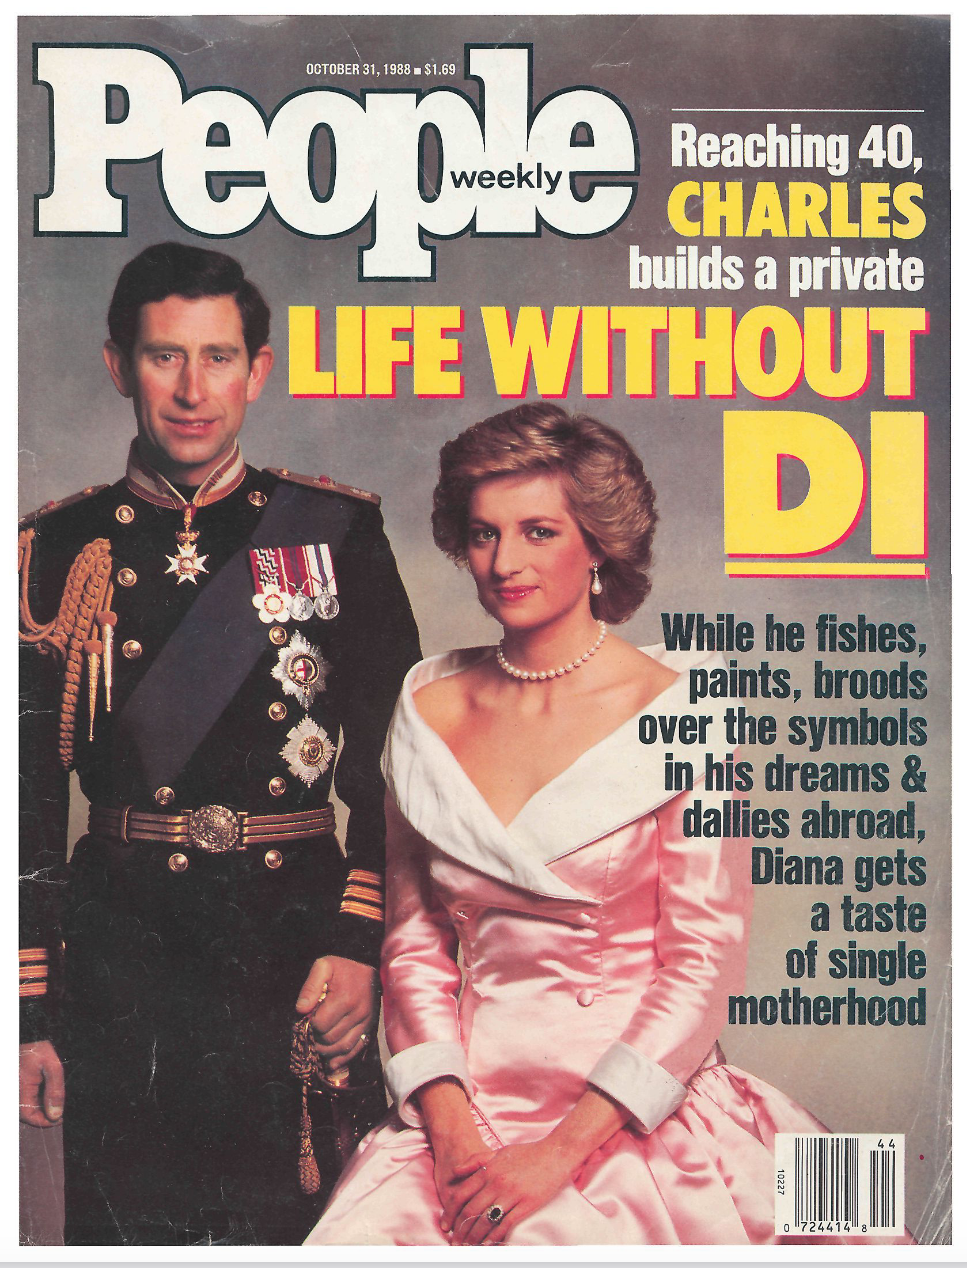 """As Charles """"fishes, paints, broods over the symbols in his dreams and dallies abroad, Diana gets a taste of single motherhood,"""" read a cover foreshadowing the future of their relationship."""